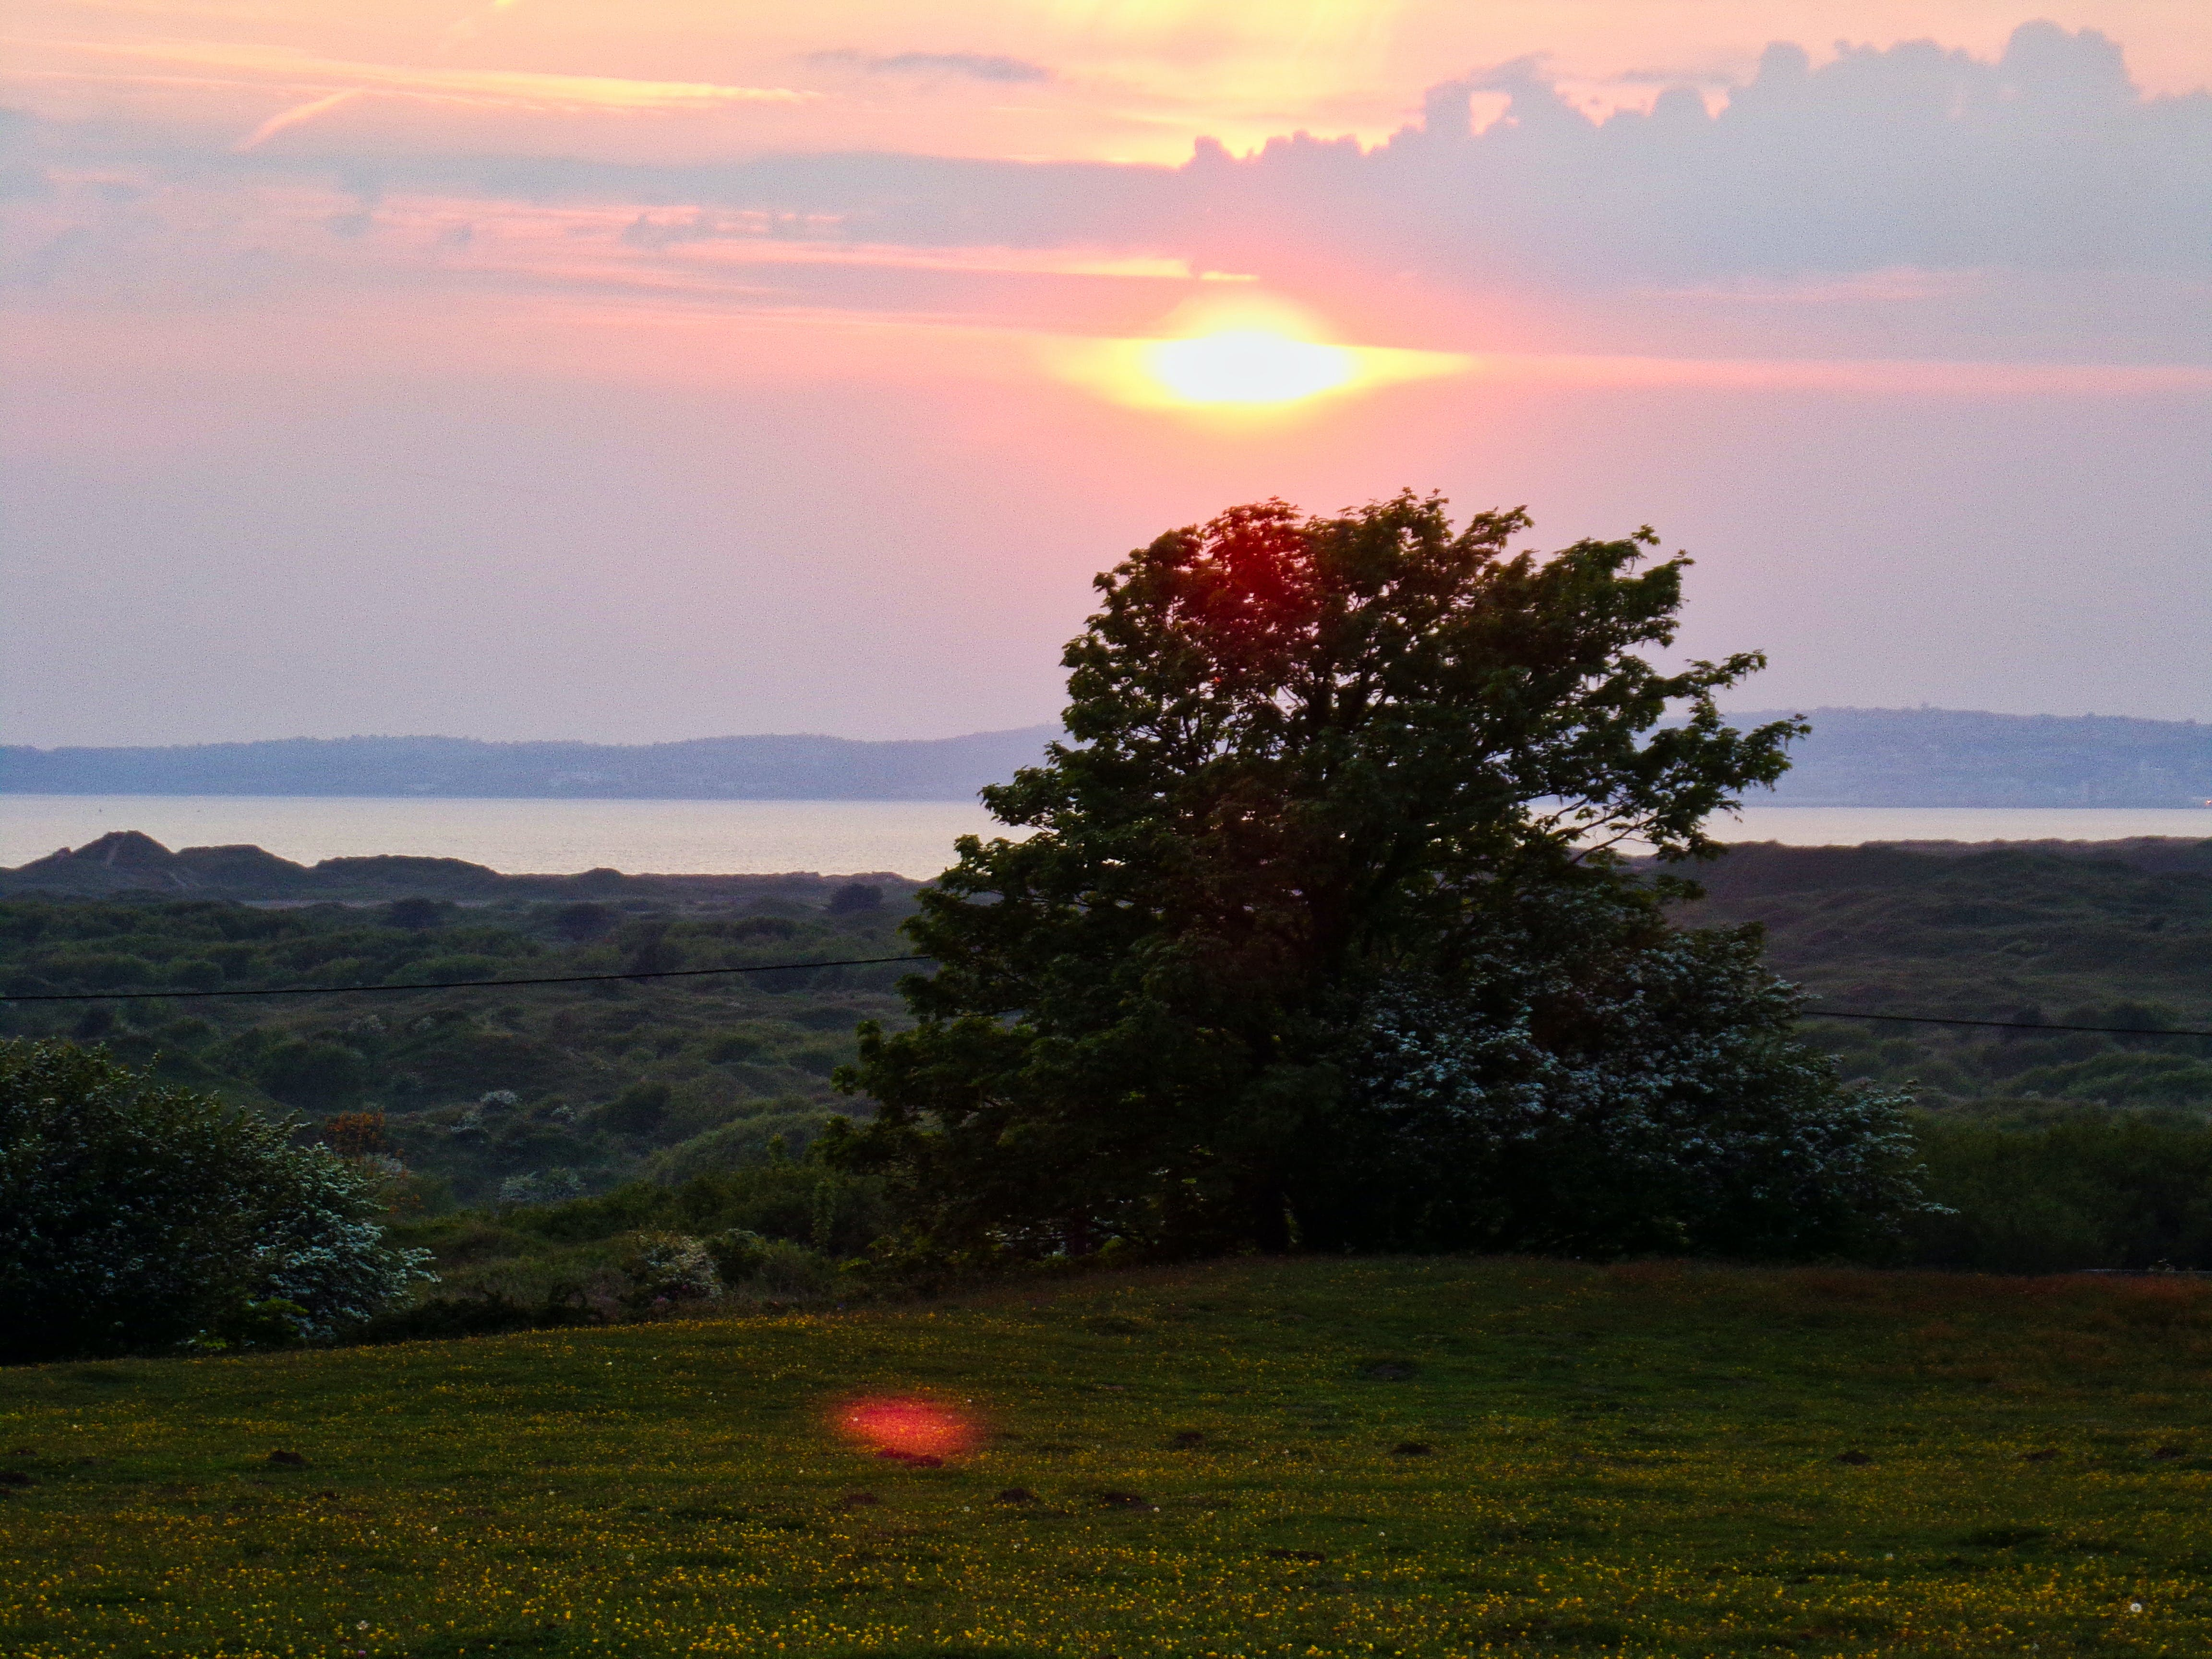 Free stock photo of mother nature, nature, nature reserve sunset, pink sunset